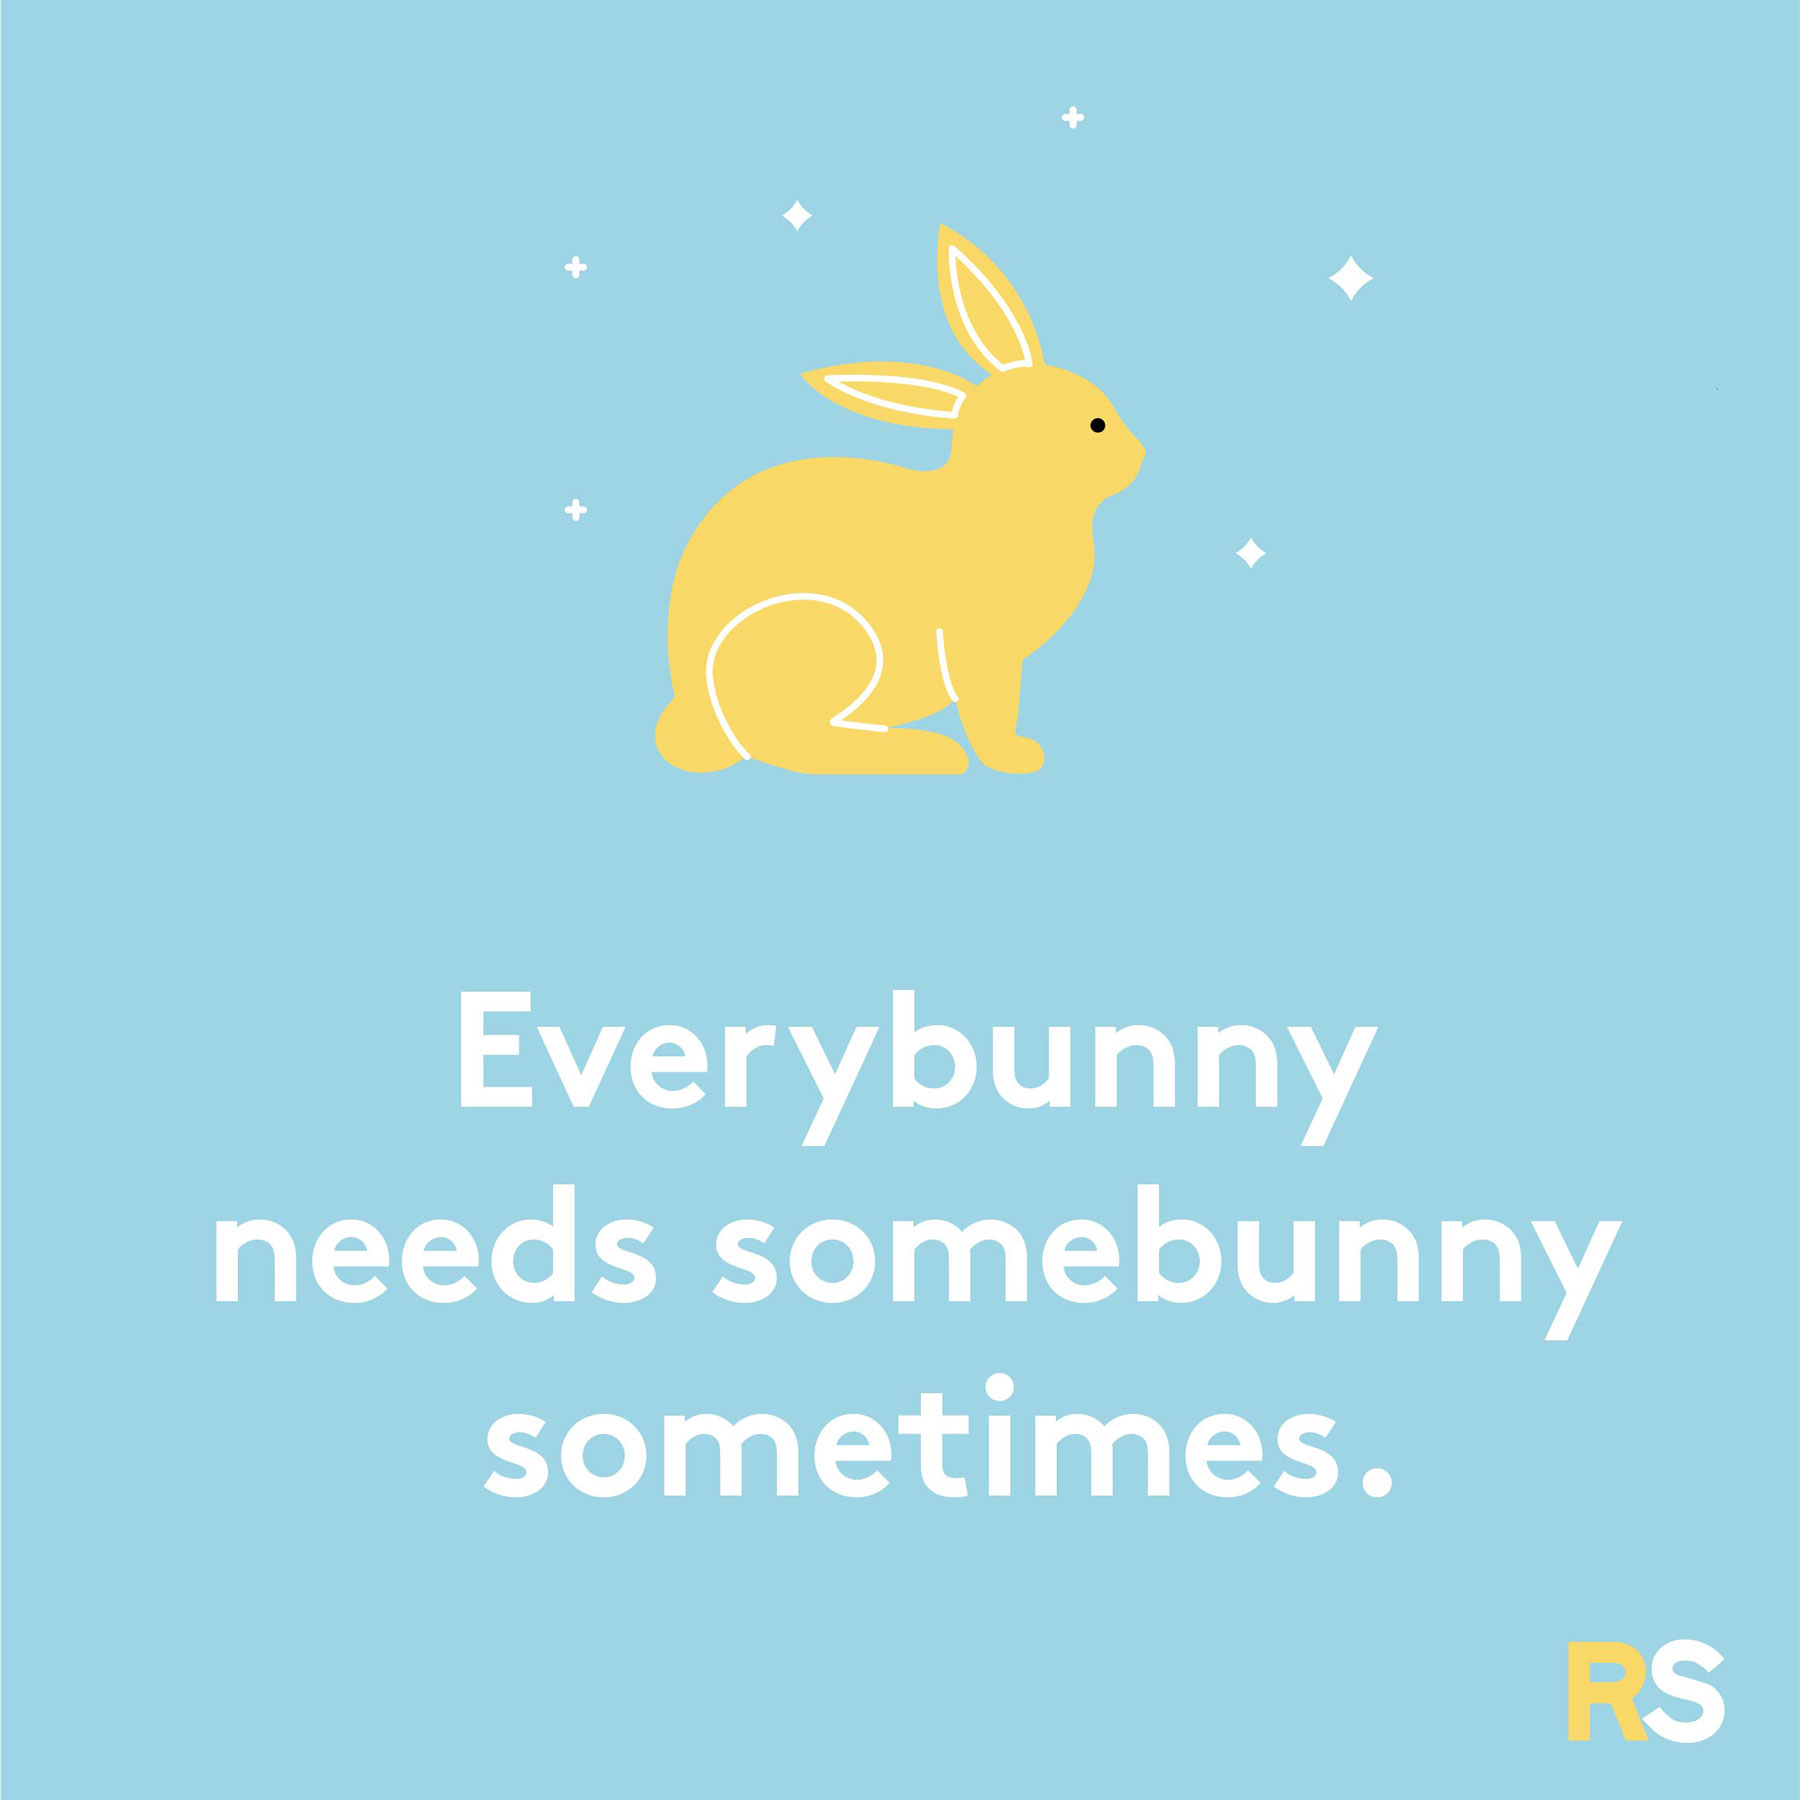 Easter quotes, captions, and messages - Everybunny needs somebunny sometimes